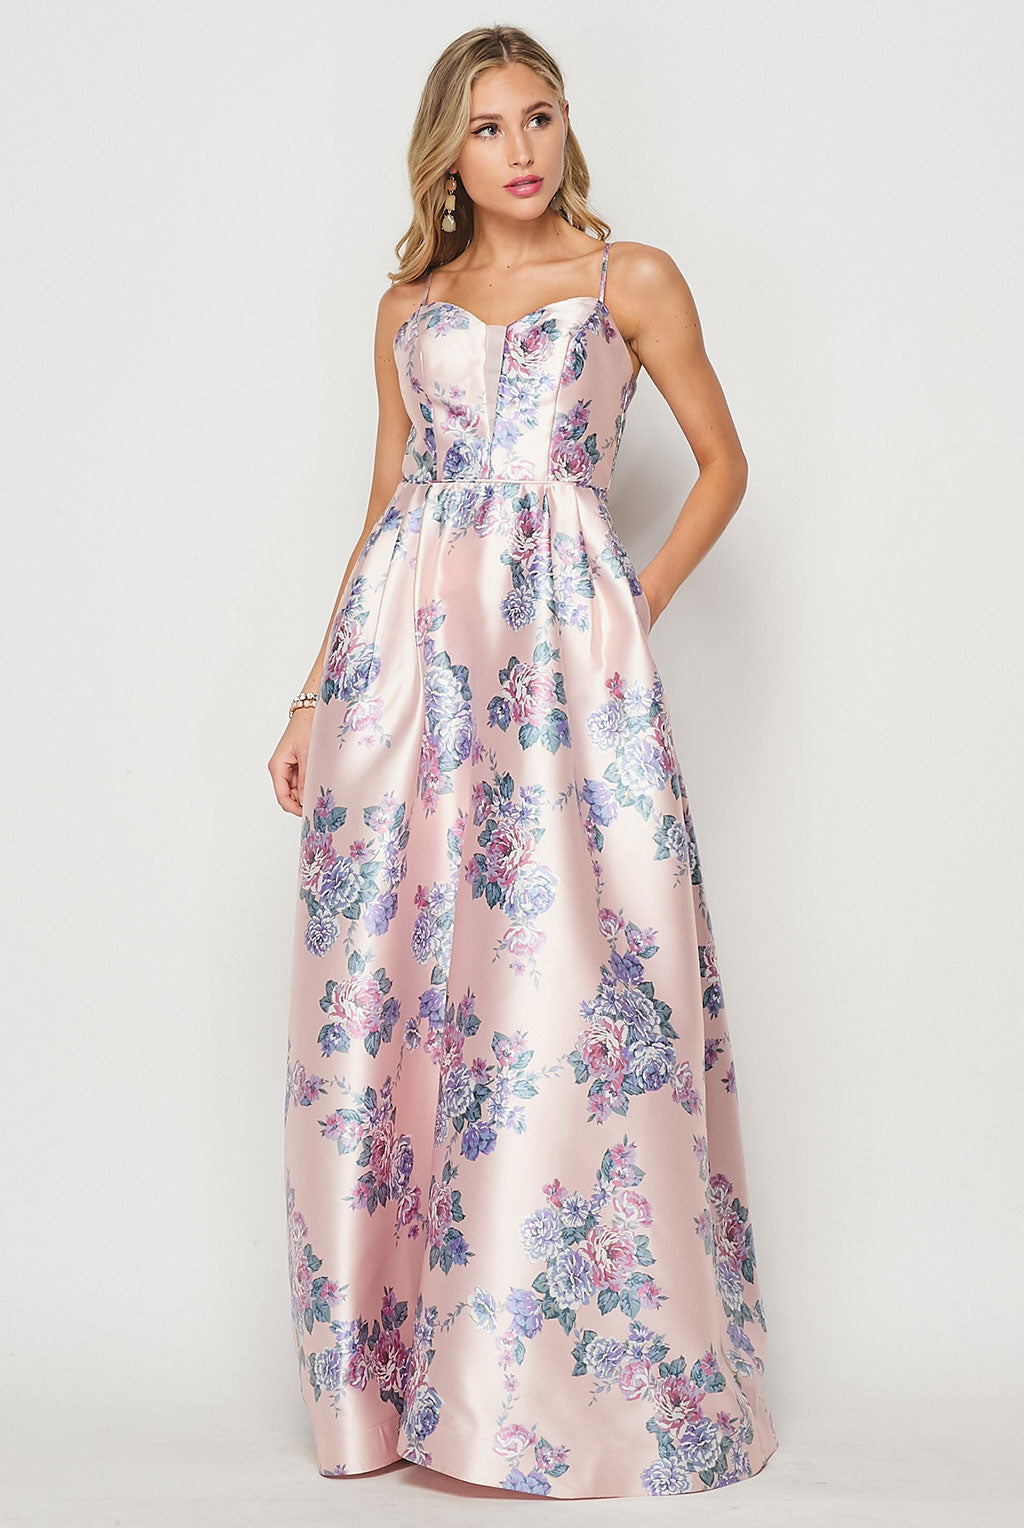 Teeze Me | Shiny Printed Ball Gown Dress Prom | Blush